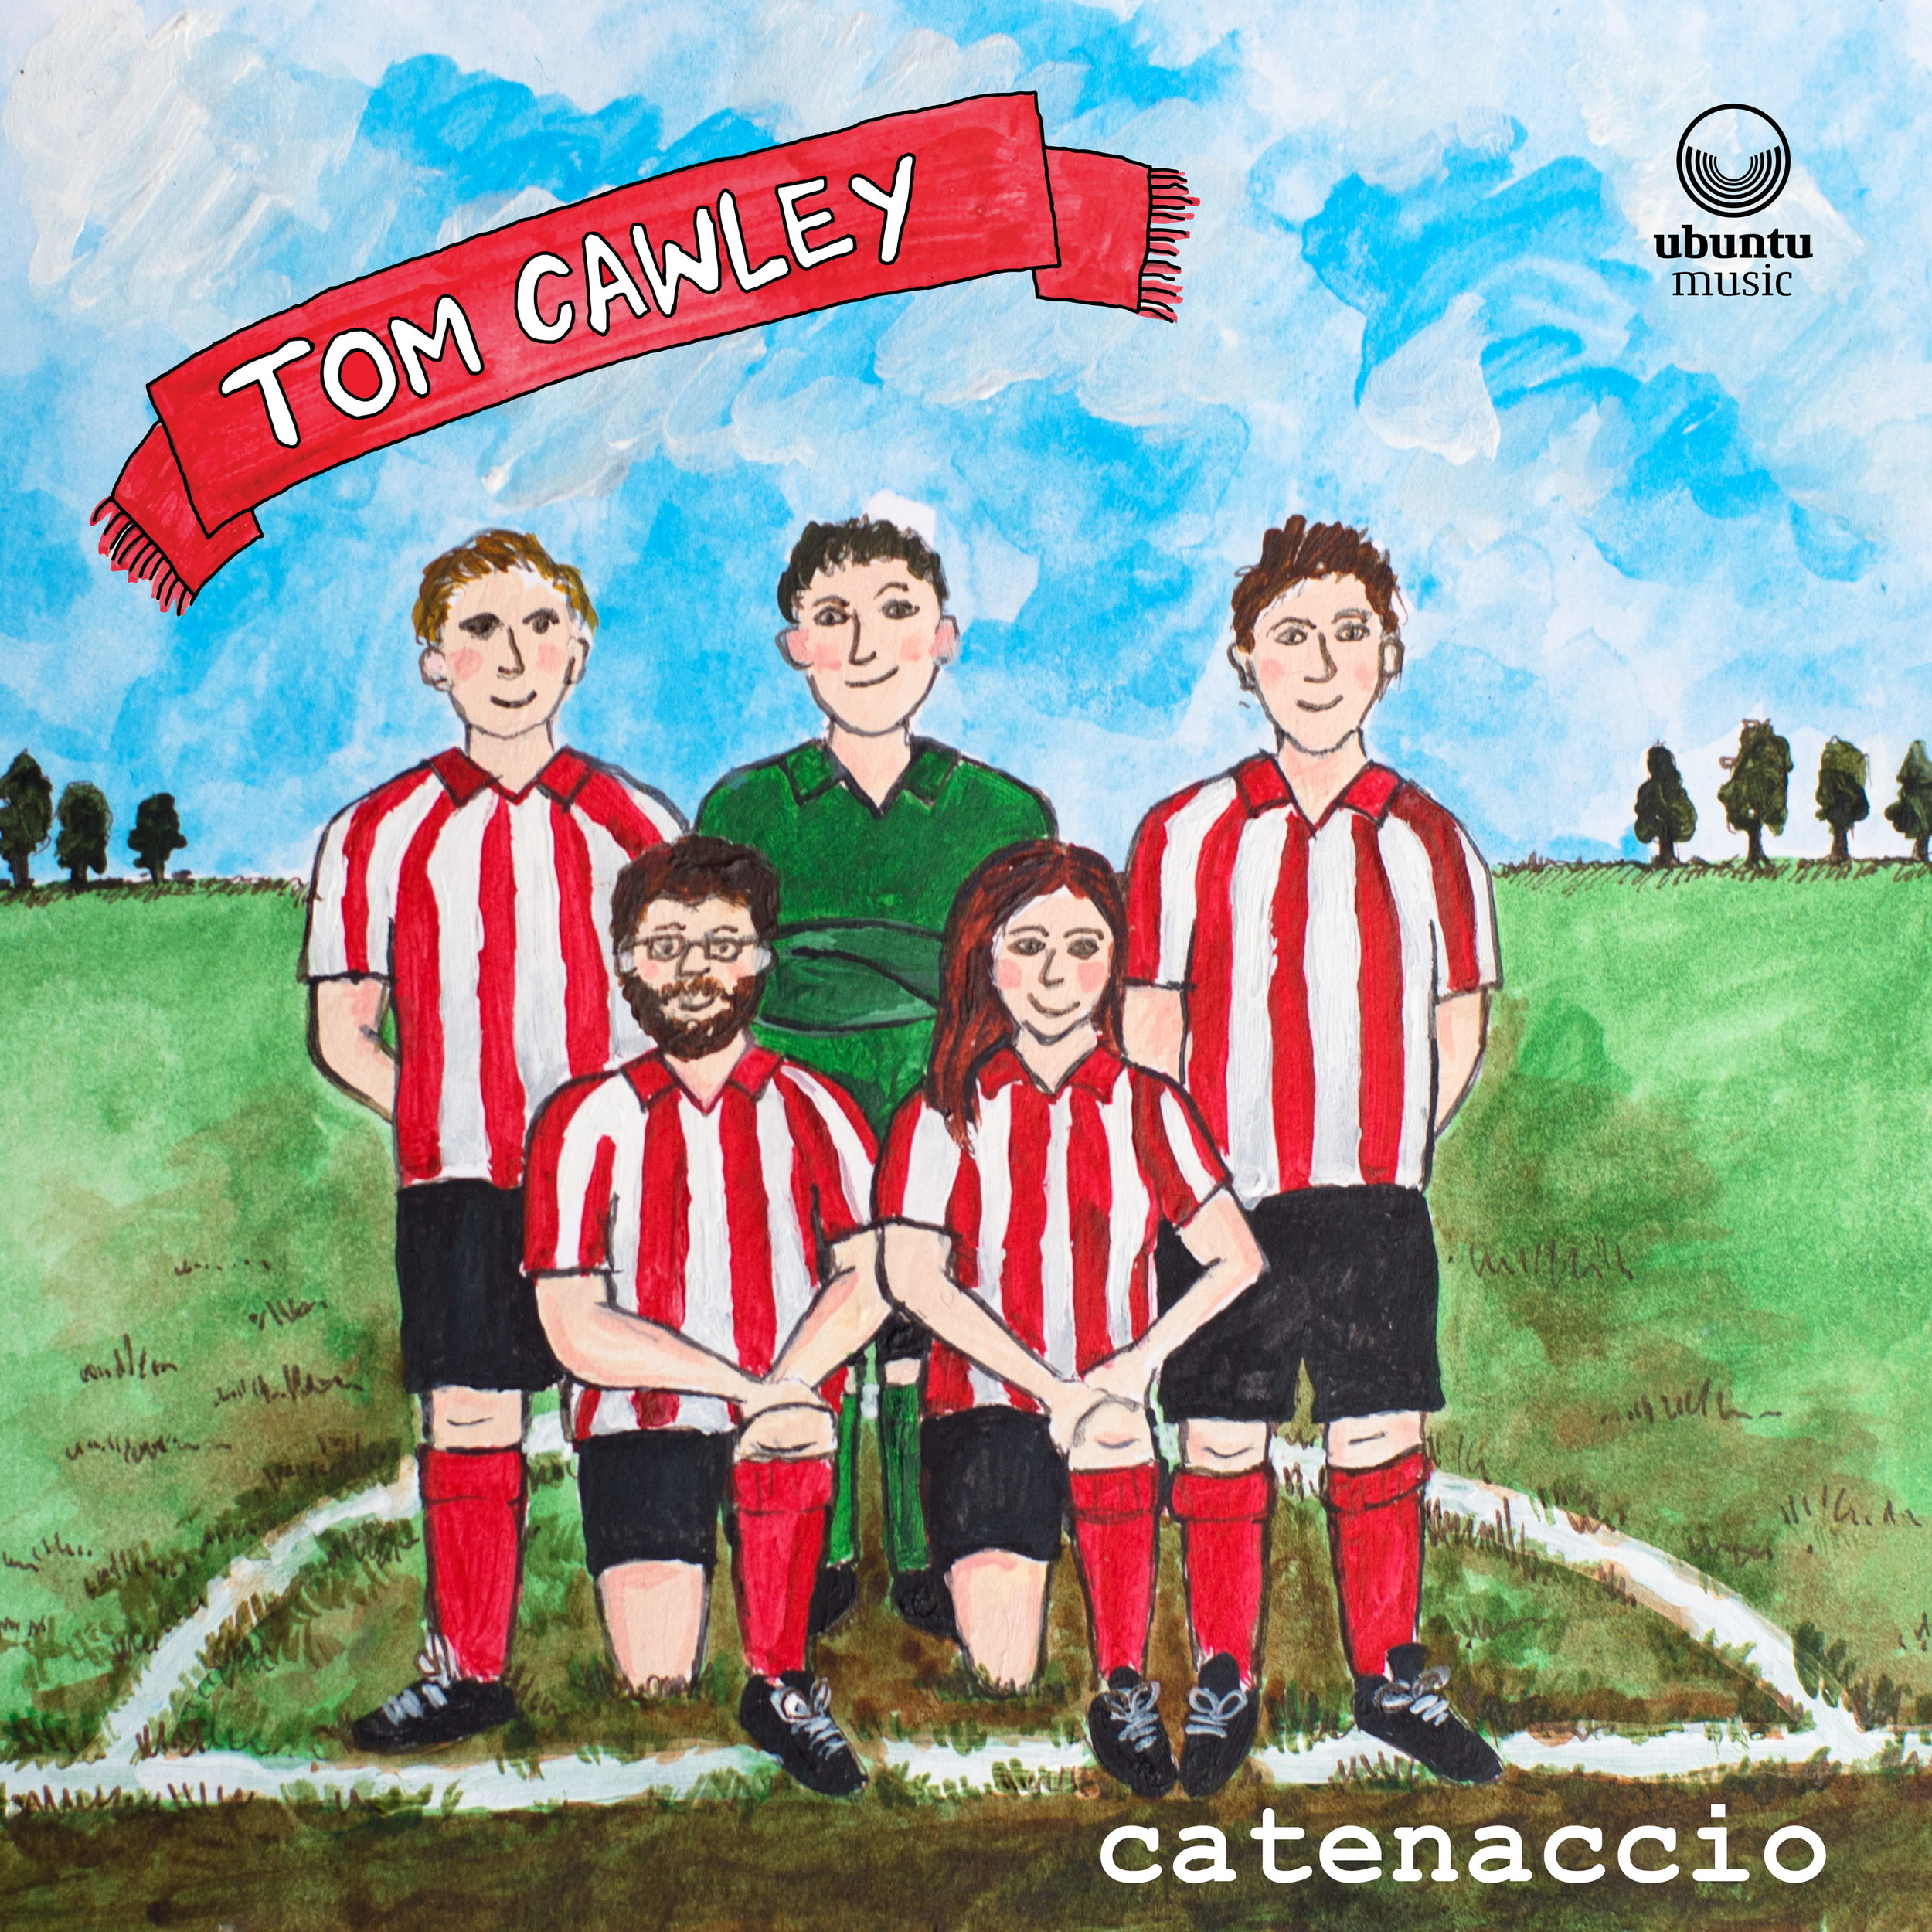 UBU0024_Tom Cawley_Catenaccio Cover_3000x3000.jpg